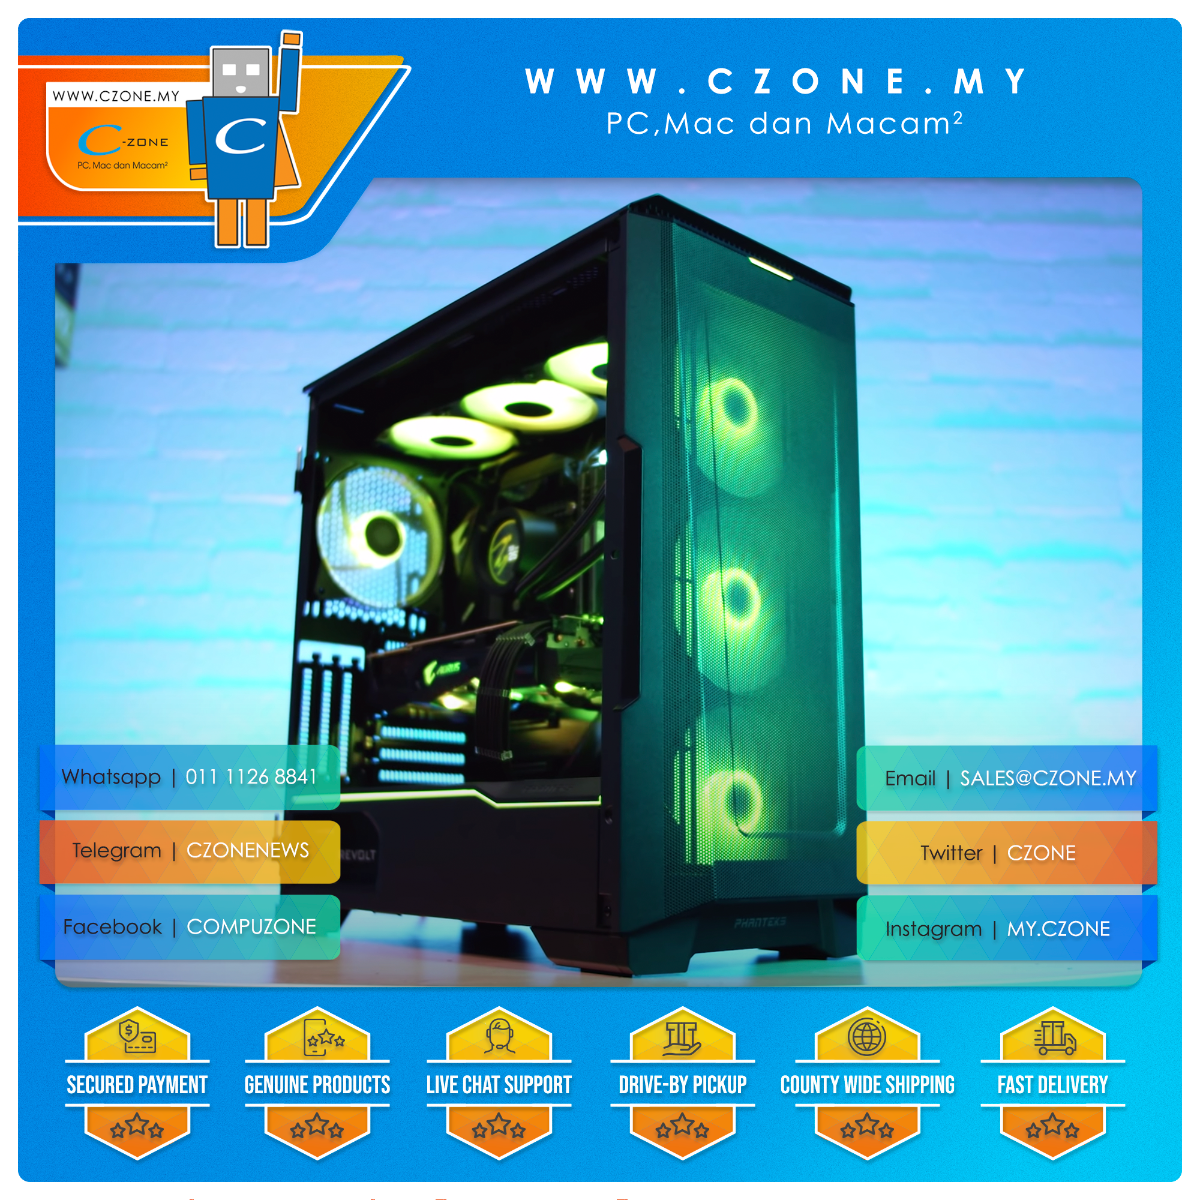 https://czone.my/czone/computer-components/core-components/computer-cases.html?brand=5780